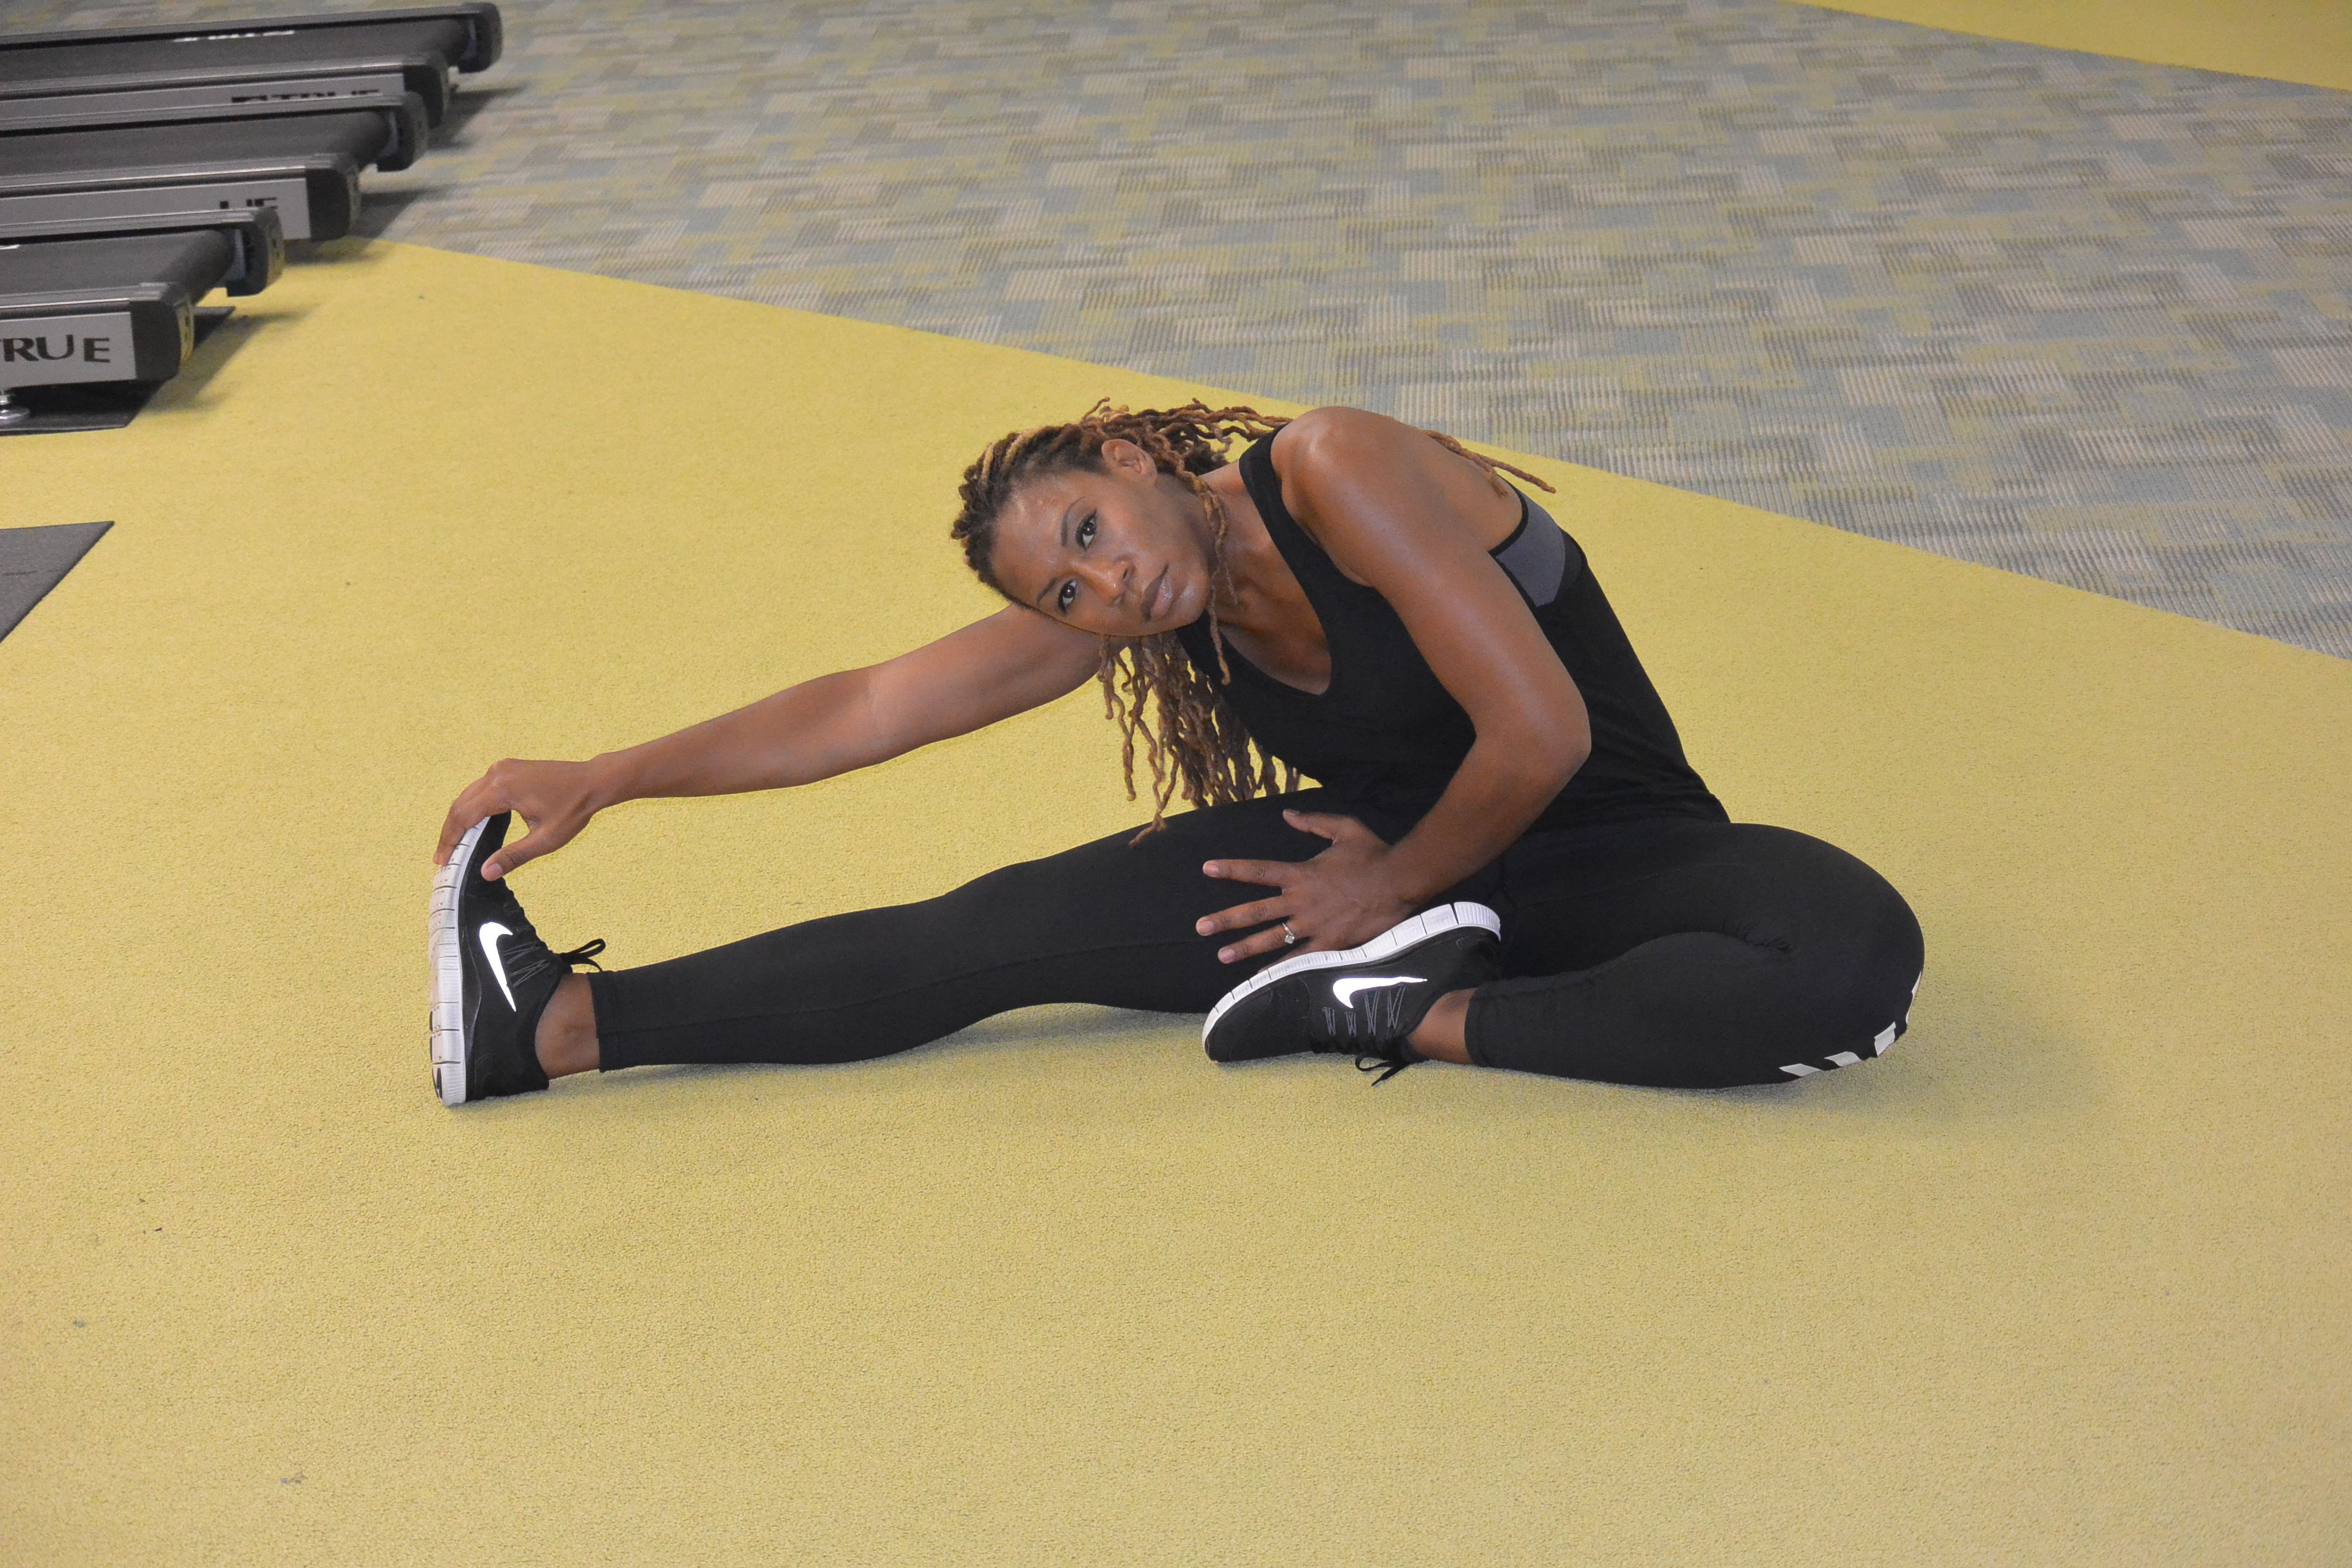 The most neglected part of a fitness routine captivated lifestyle